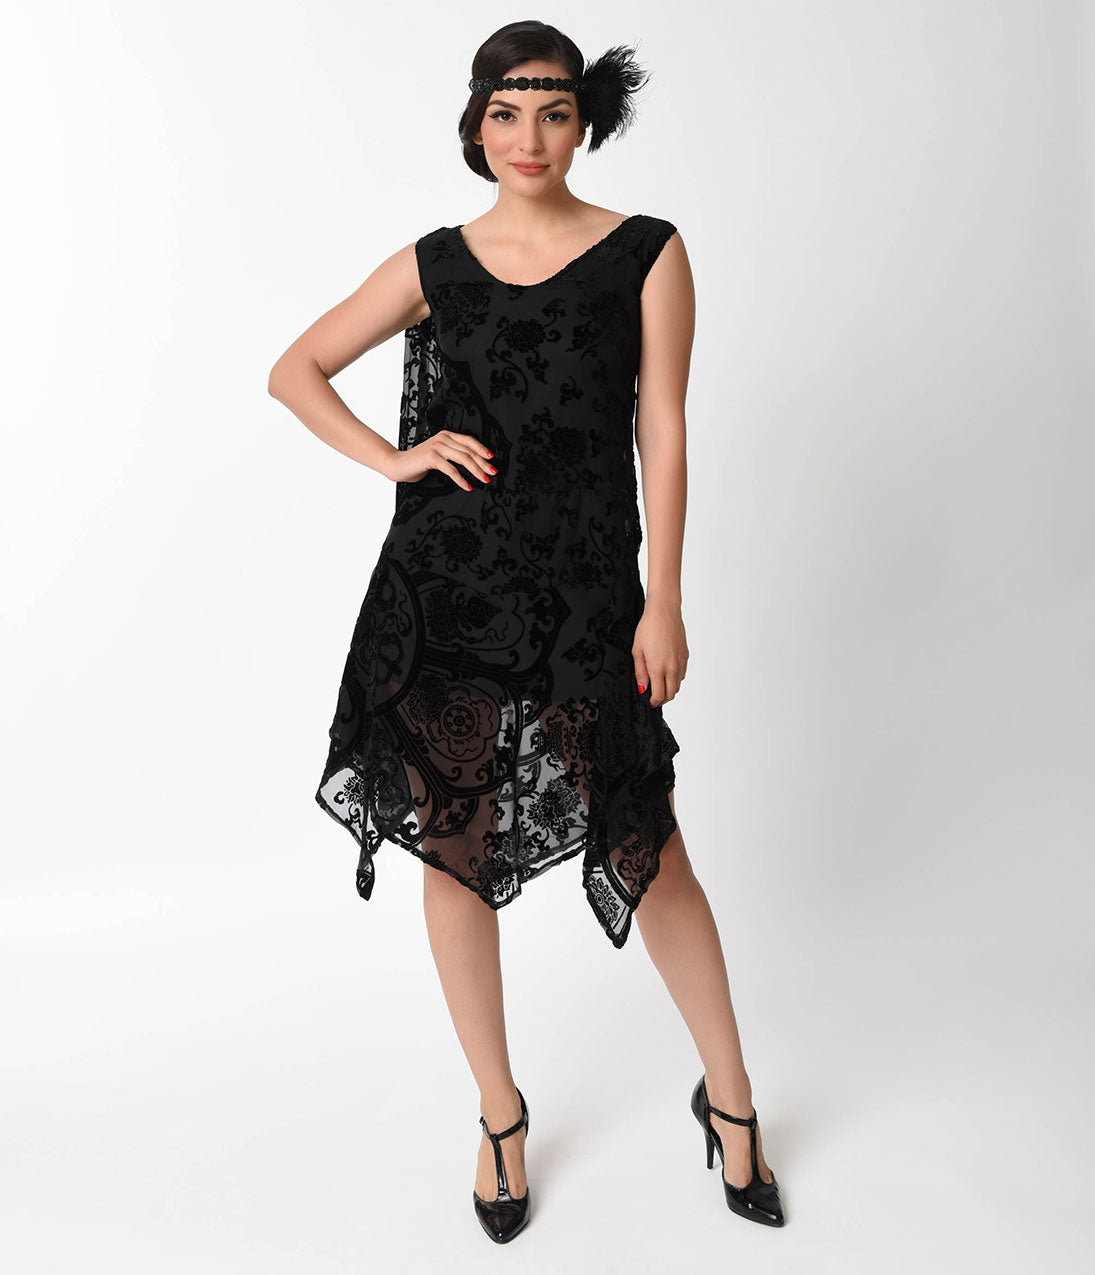 Swing Dance Shoes- Vintage, Lindy Hop, Tap, Ballroom 1920S Style Black Burnout Velvet Flapper Dress $77.00 AT vintagedancer.com